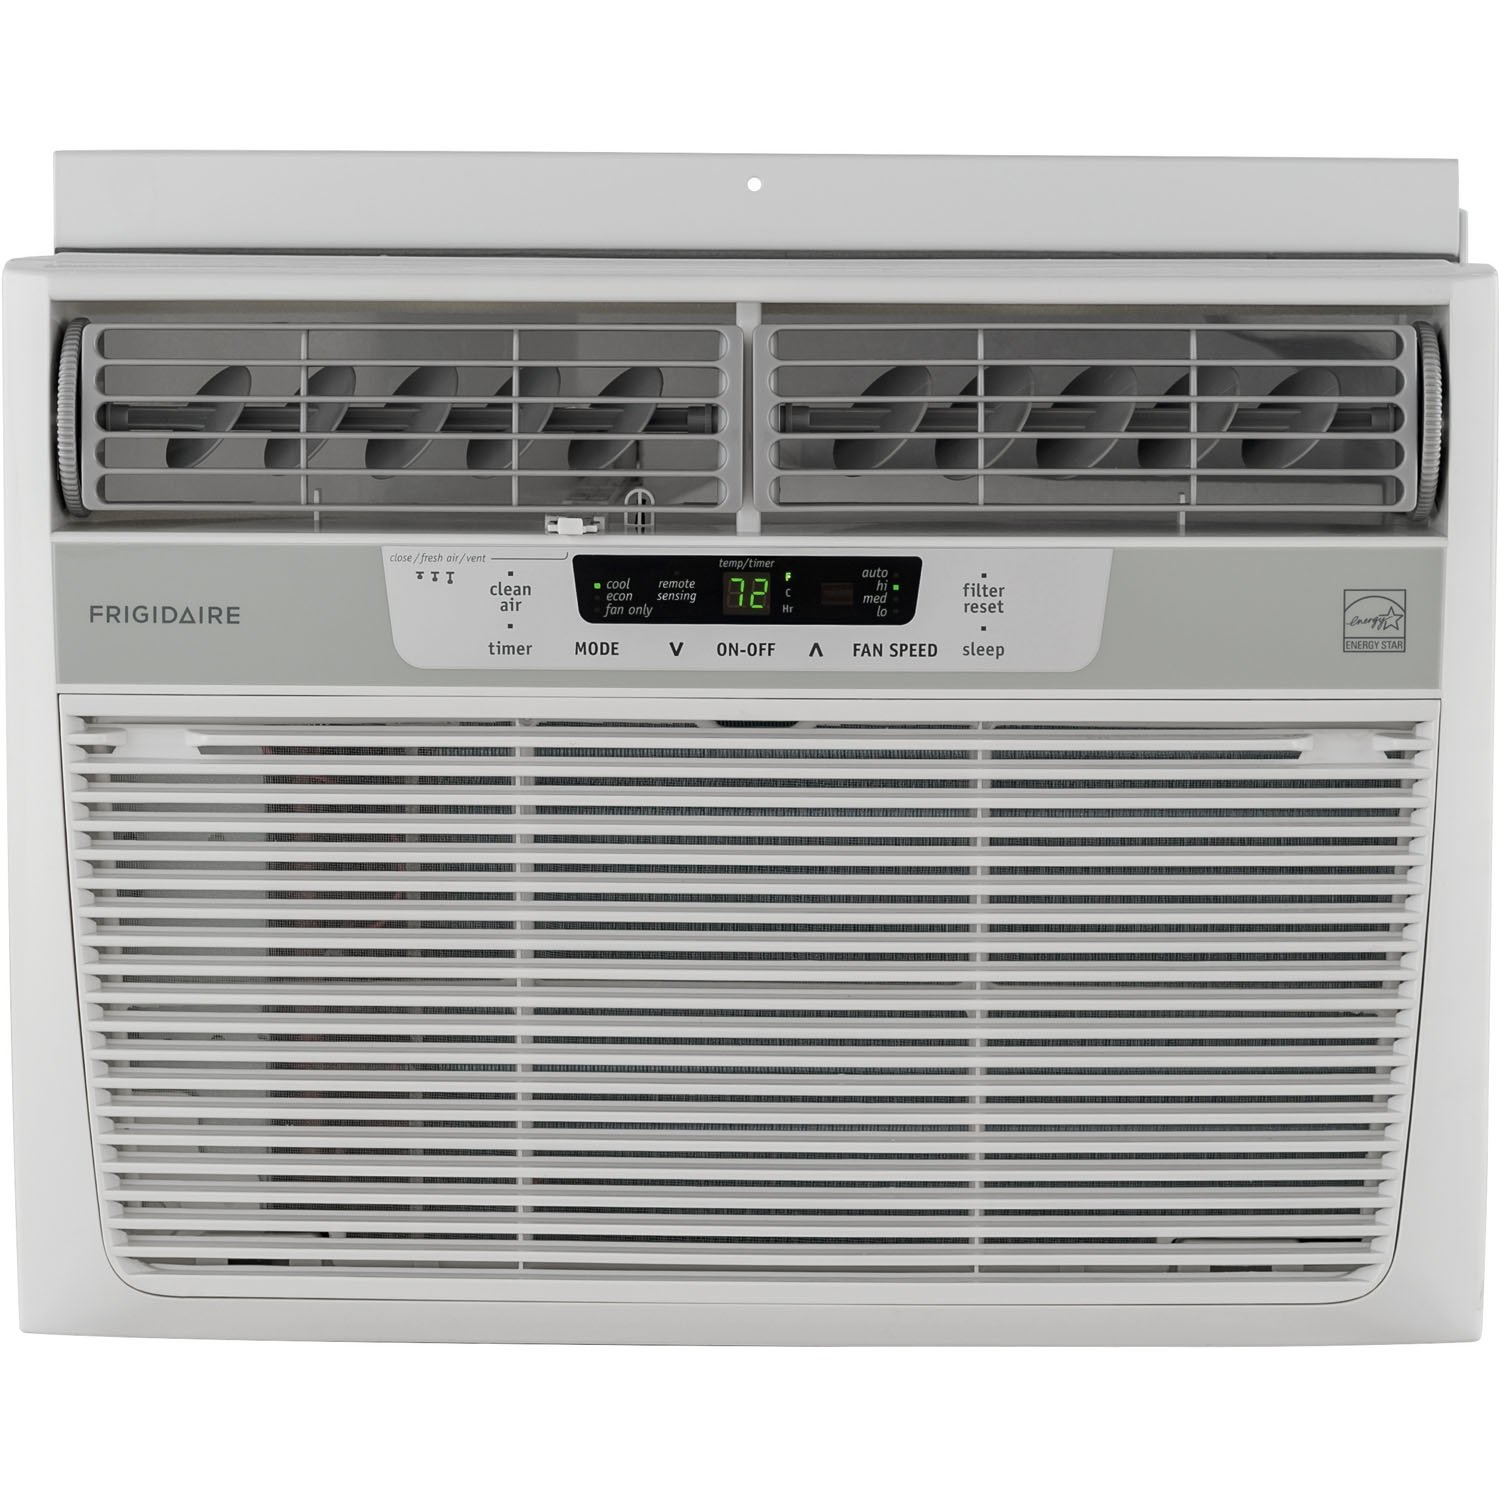 Frigidaire 12,000 BTU 115V Window-Mounted Compact Air Conditioner with Temperature Sensing Remote Control FFRE1233Q1